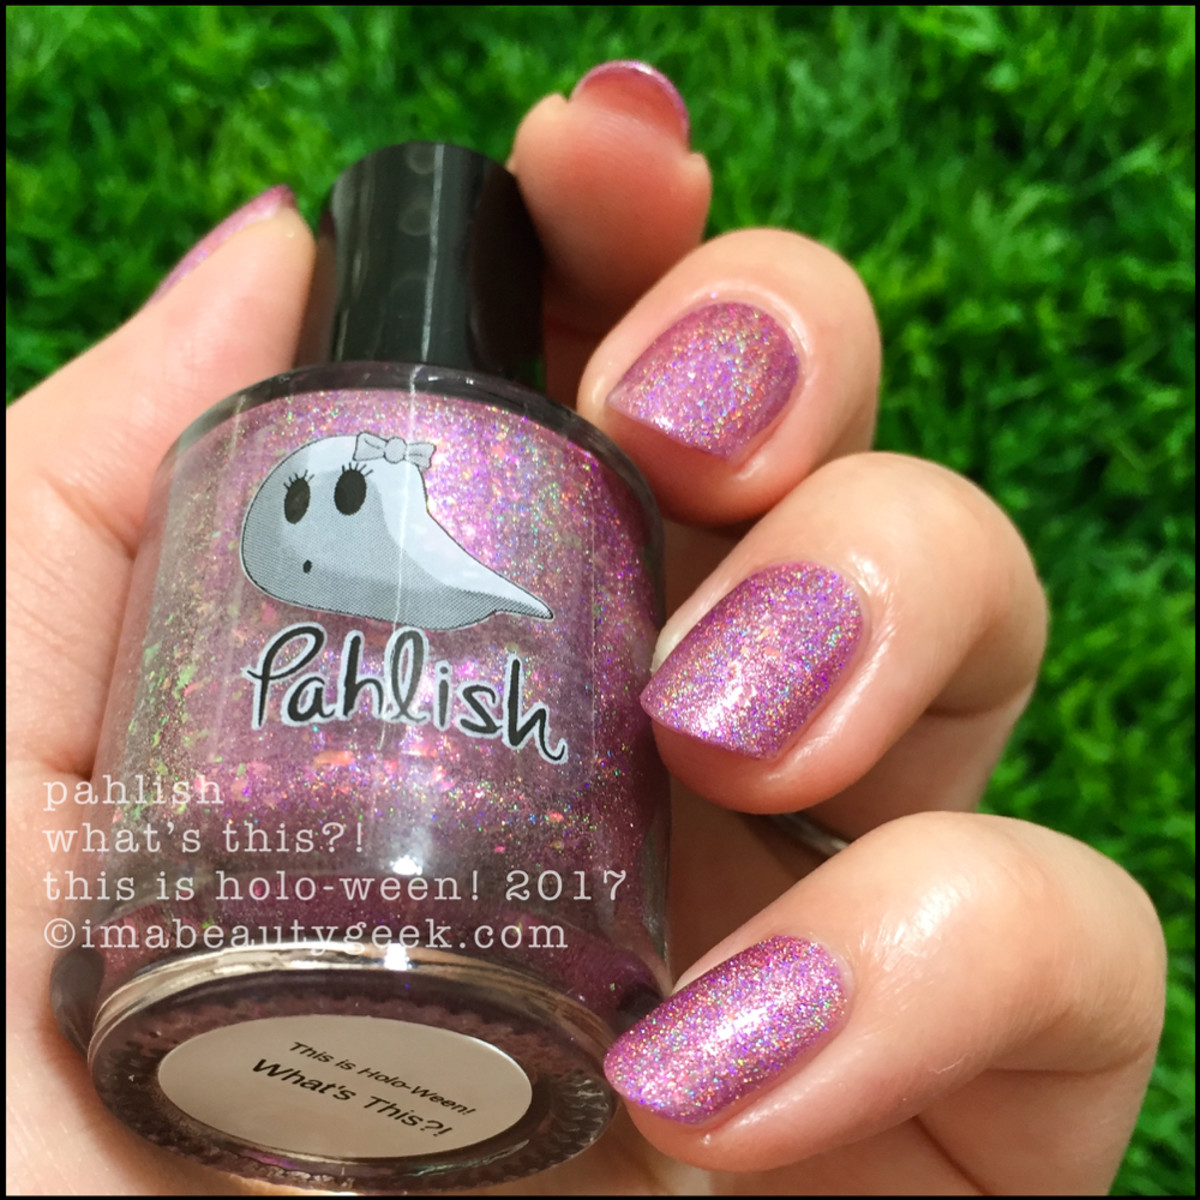 Pahlish What's This?! 3 - This is Holo-ween! 2017